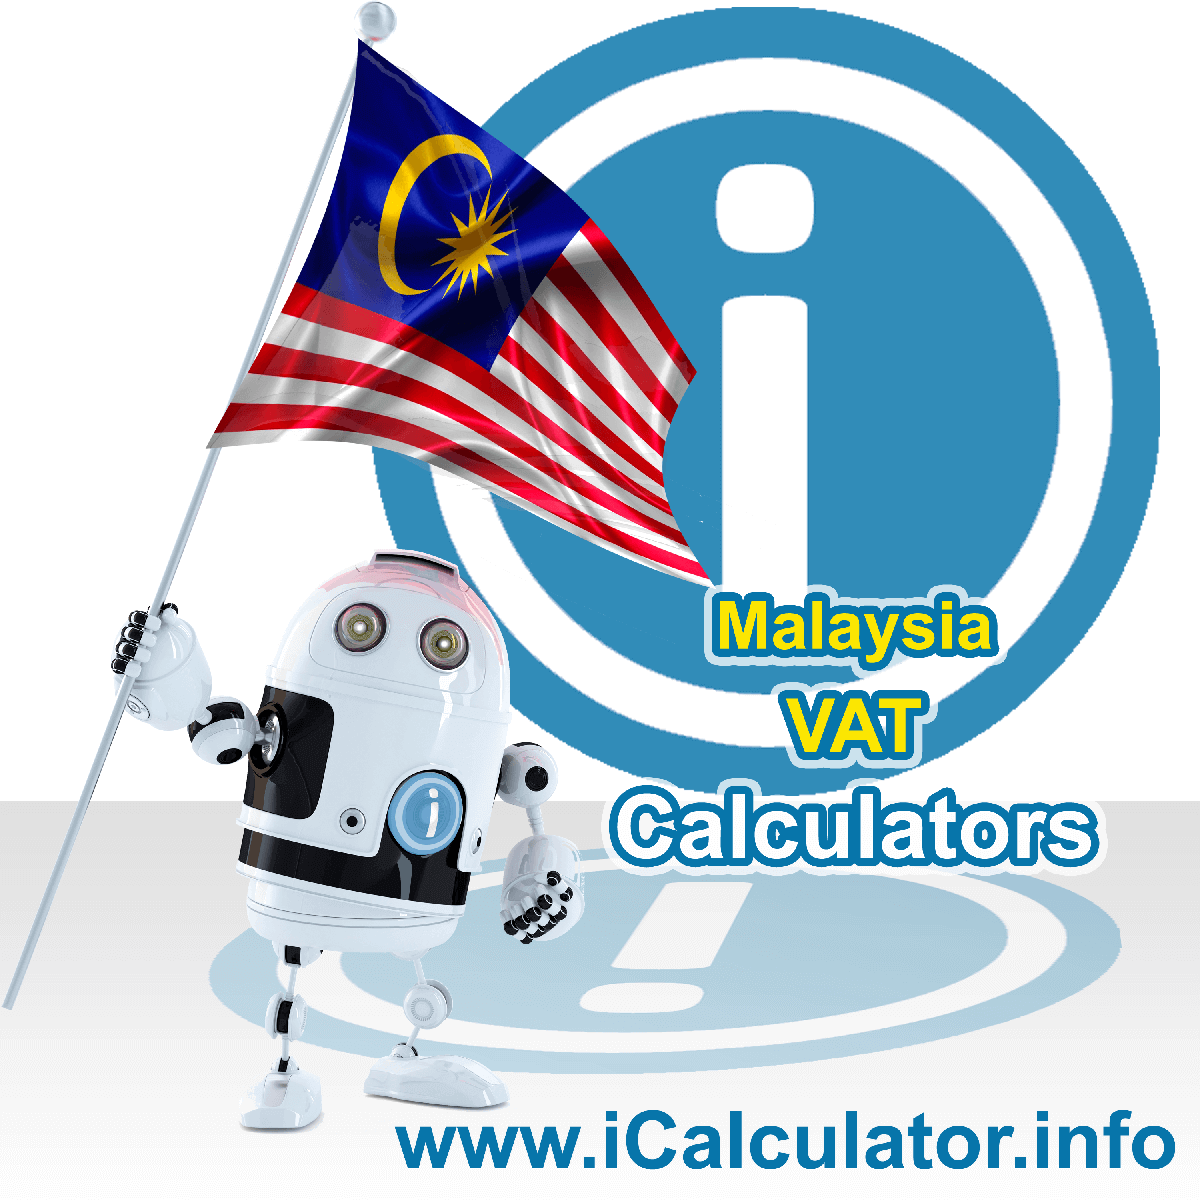 Malaysia VAT Calculator. This image shows the Malaysia flag and information relating to the VAT formula used for calculating Value Added Tax in Malaysia using the Malaysia VAT Calculator in 2020